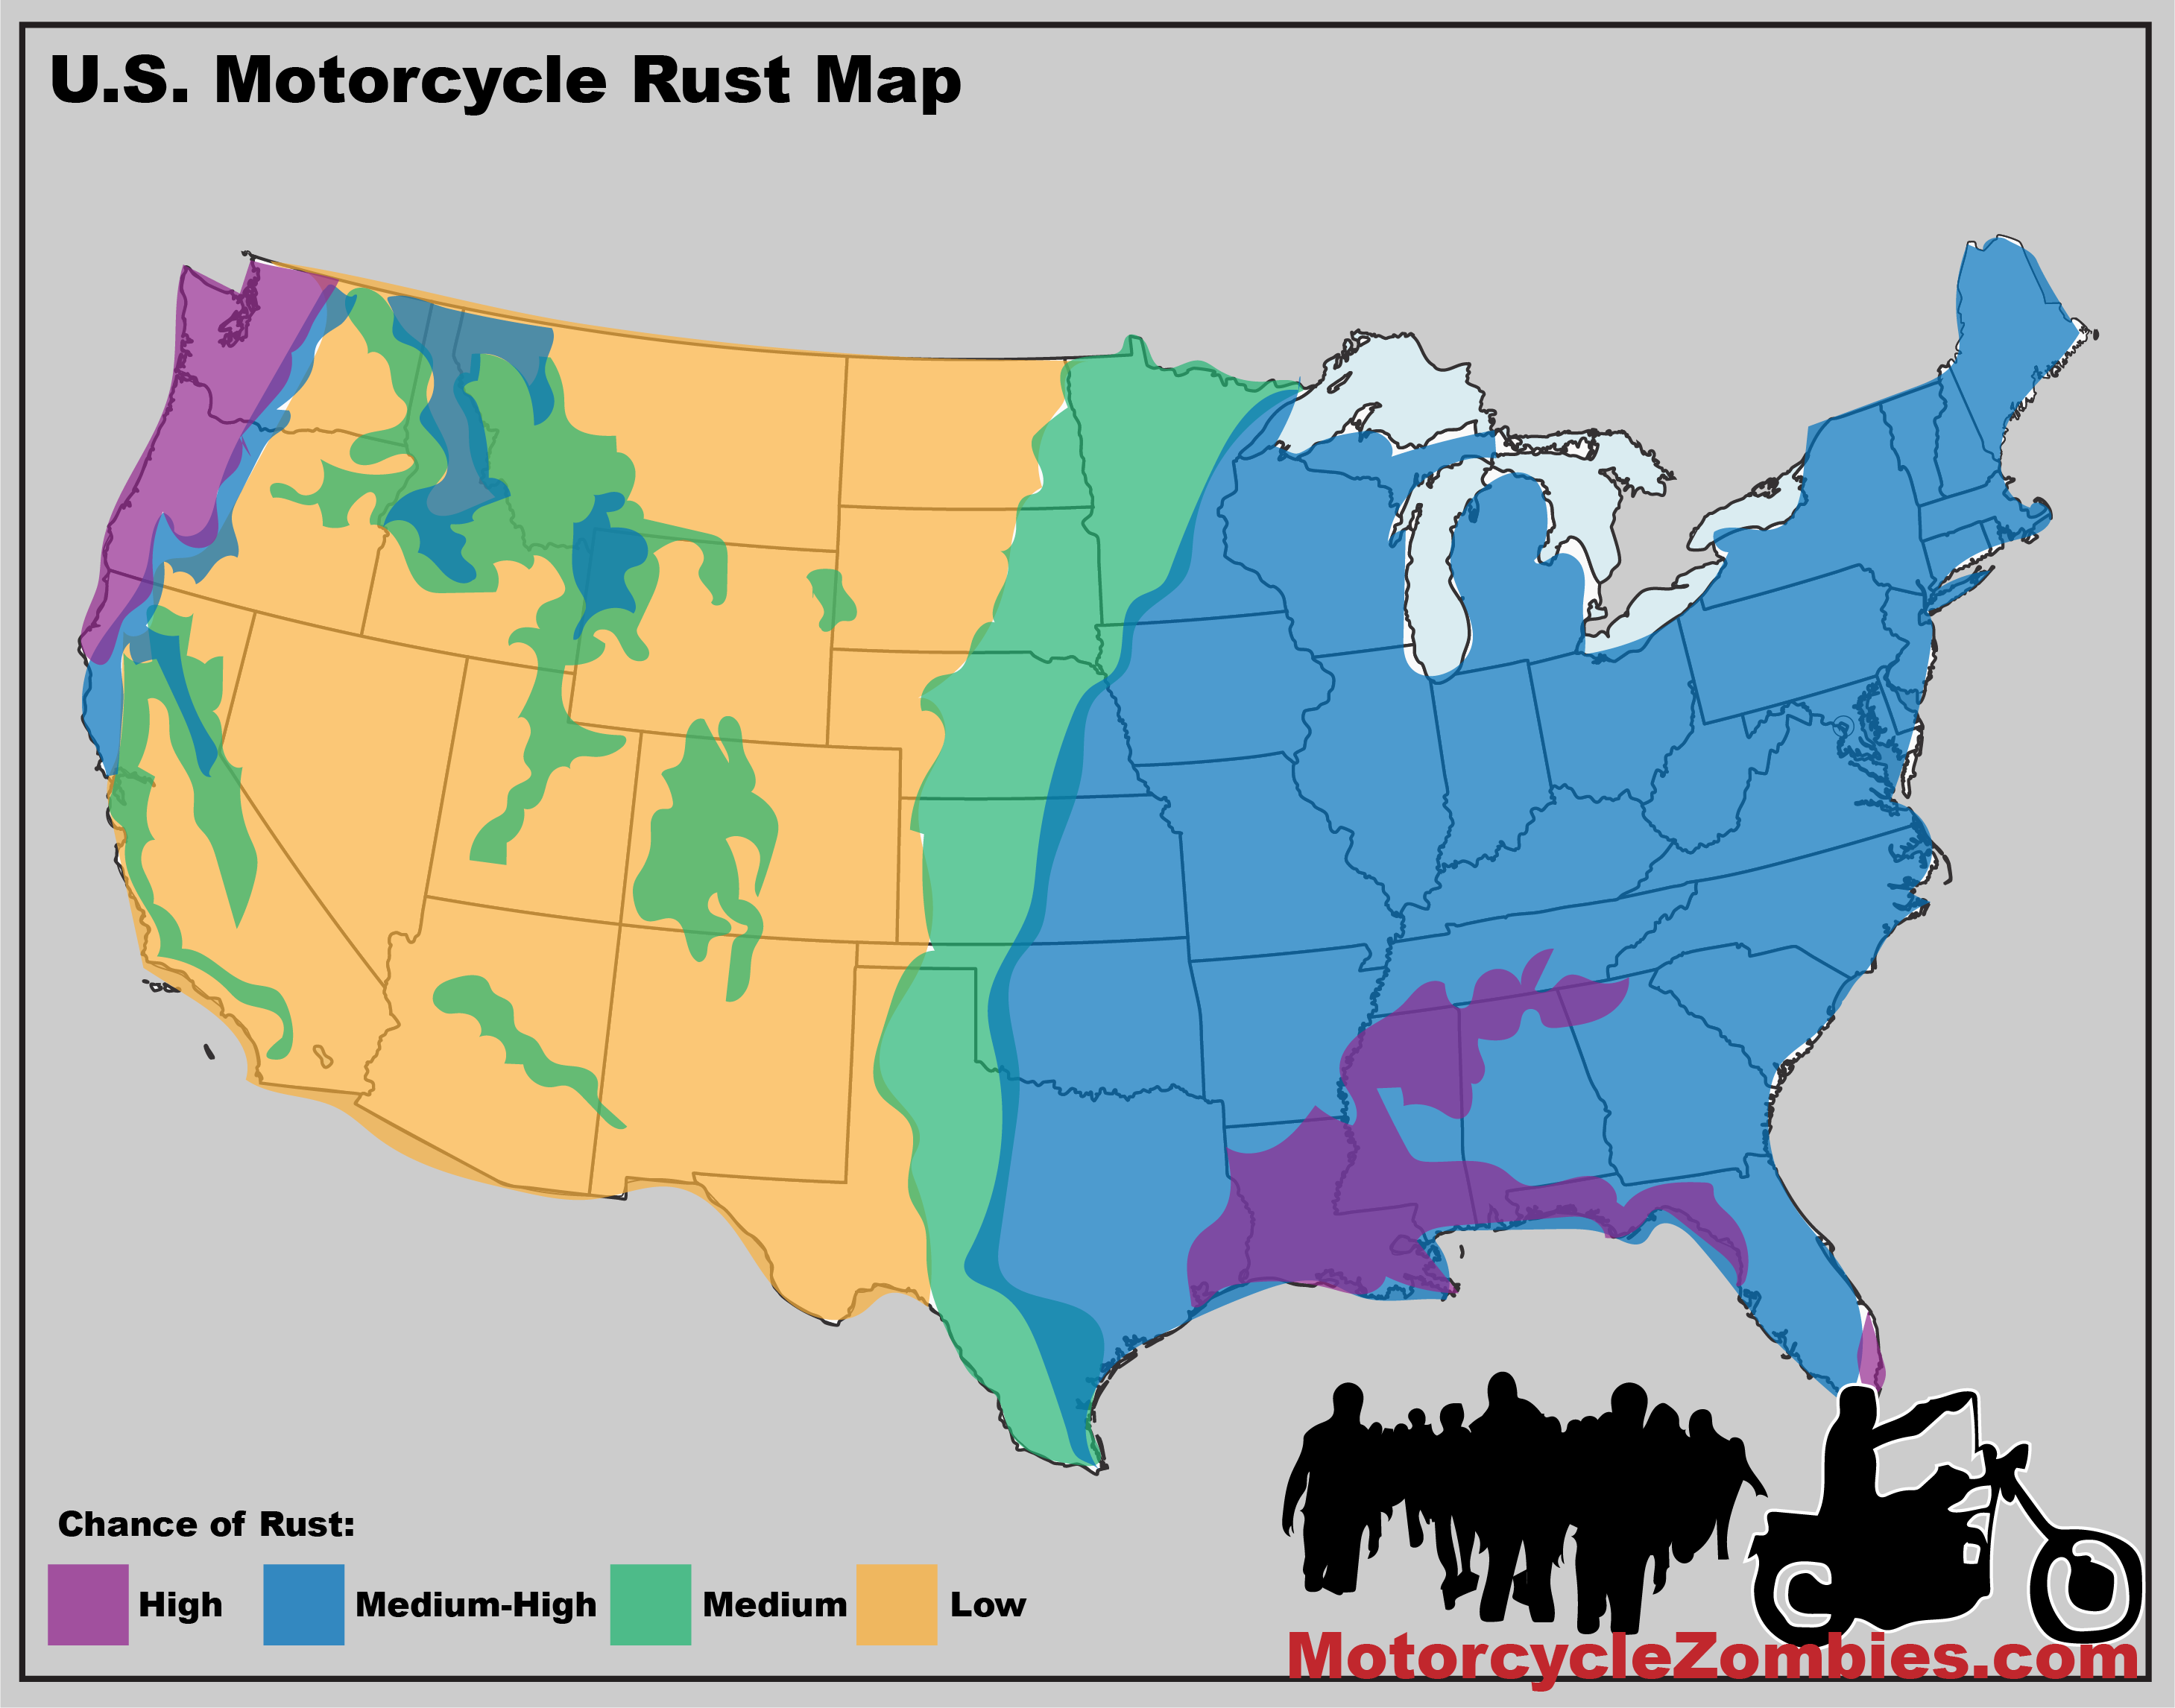 how to get rid of rust on motorcycle